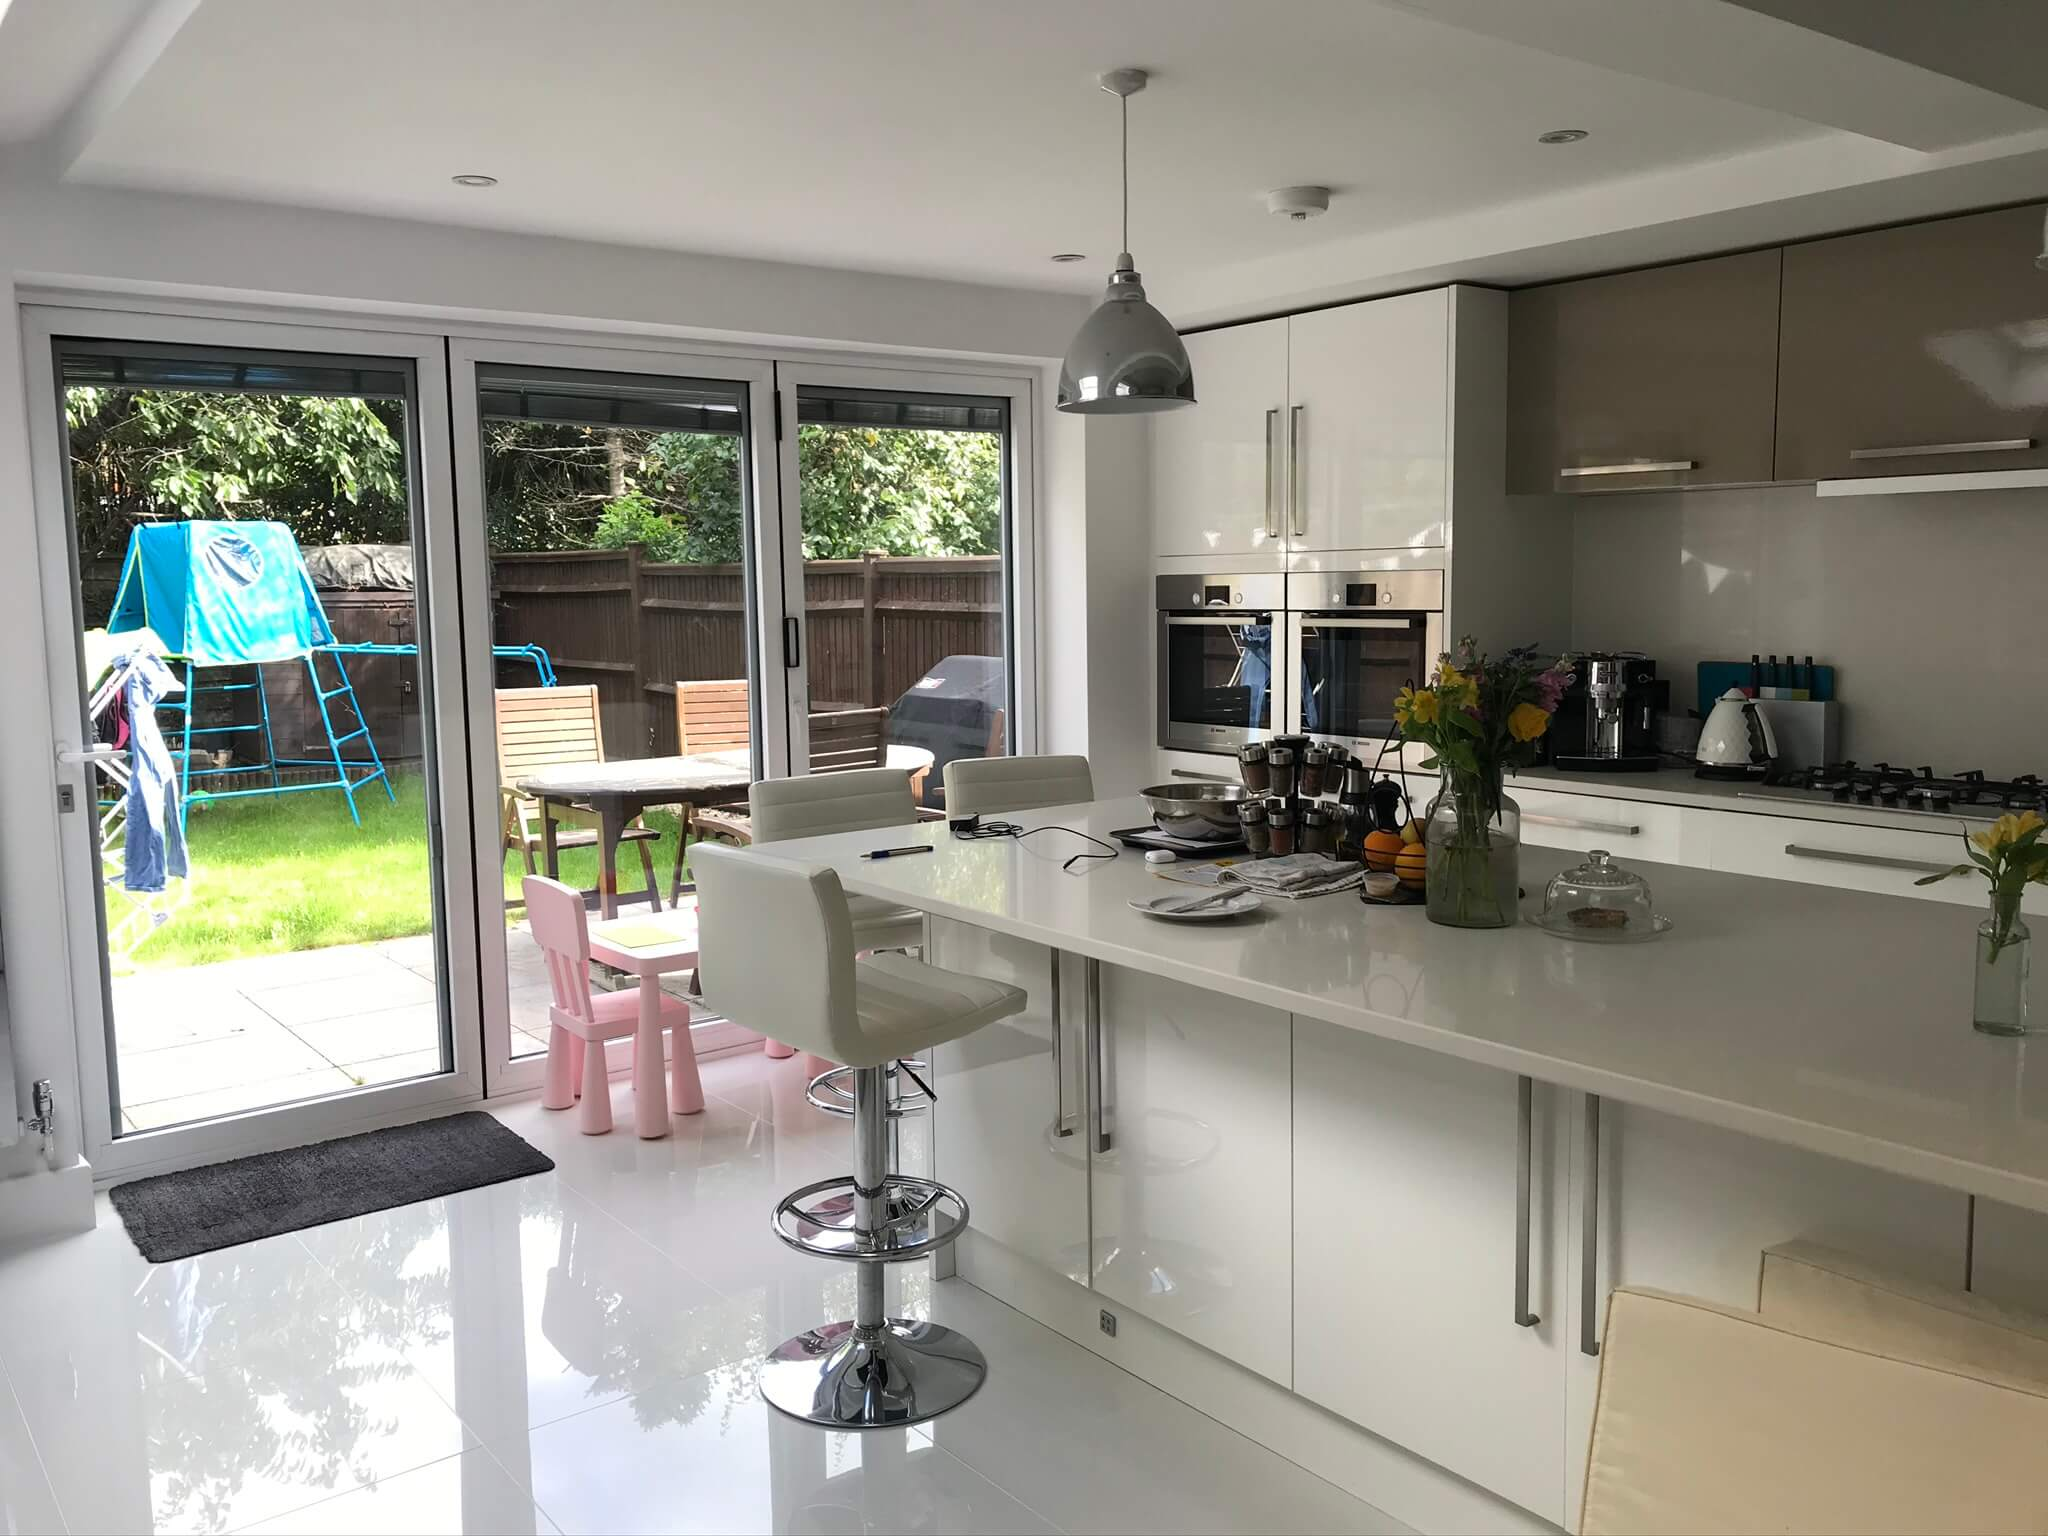 Cleaning Services Surbiton KT5, KT6